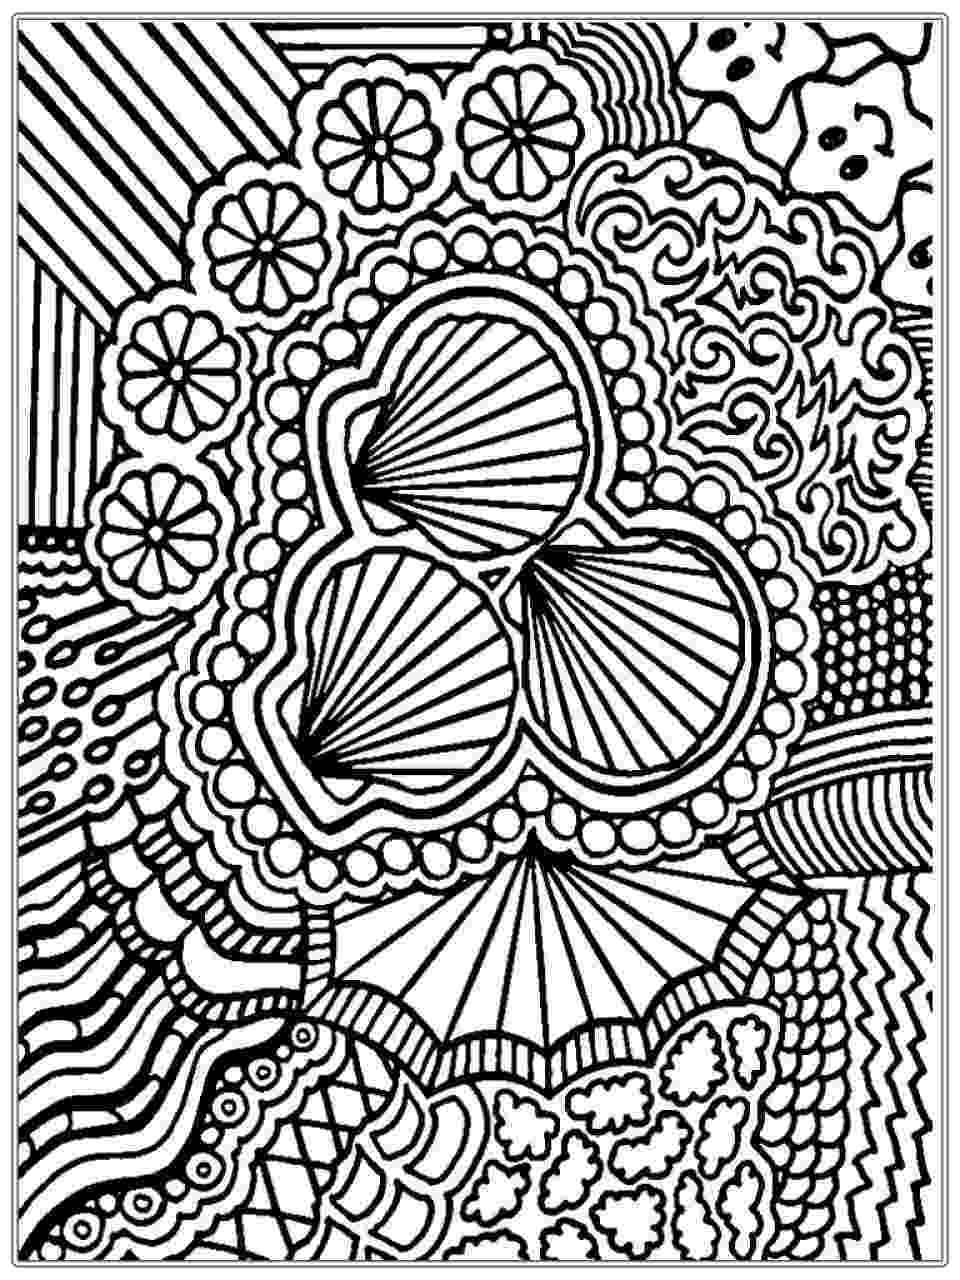 cool abstract coloring pages 1000 images about school on pinterest abstract coloring cool coloring abstract pages